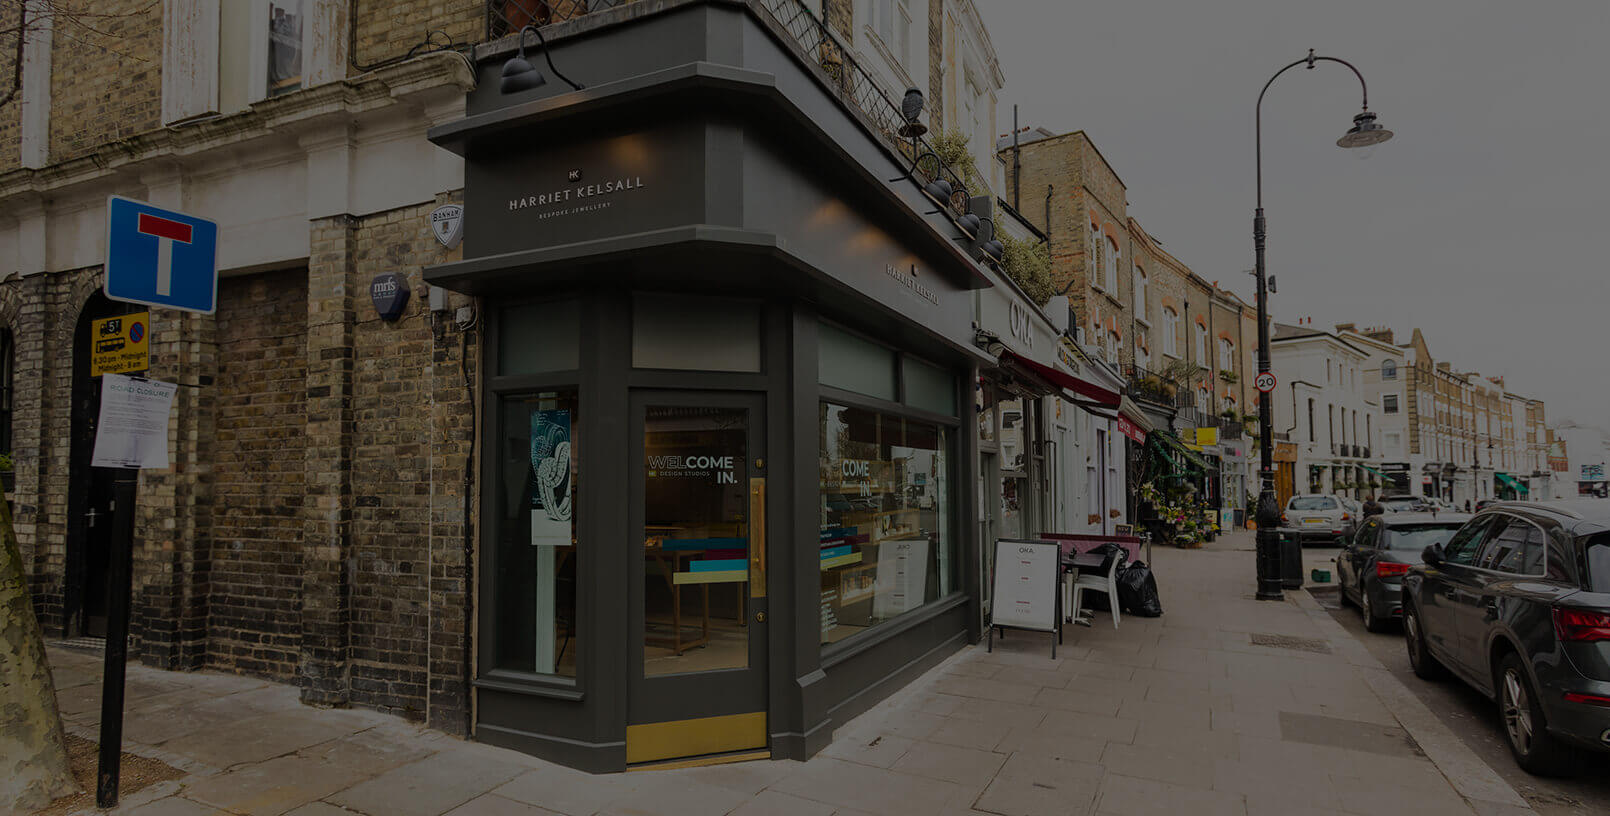 Harriet-Kelsall-Bespoke-Jewellery-Primrose-Hill-London.jpg